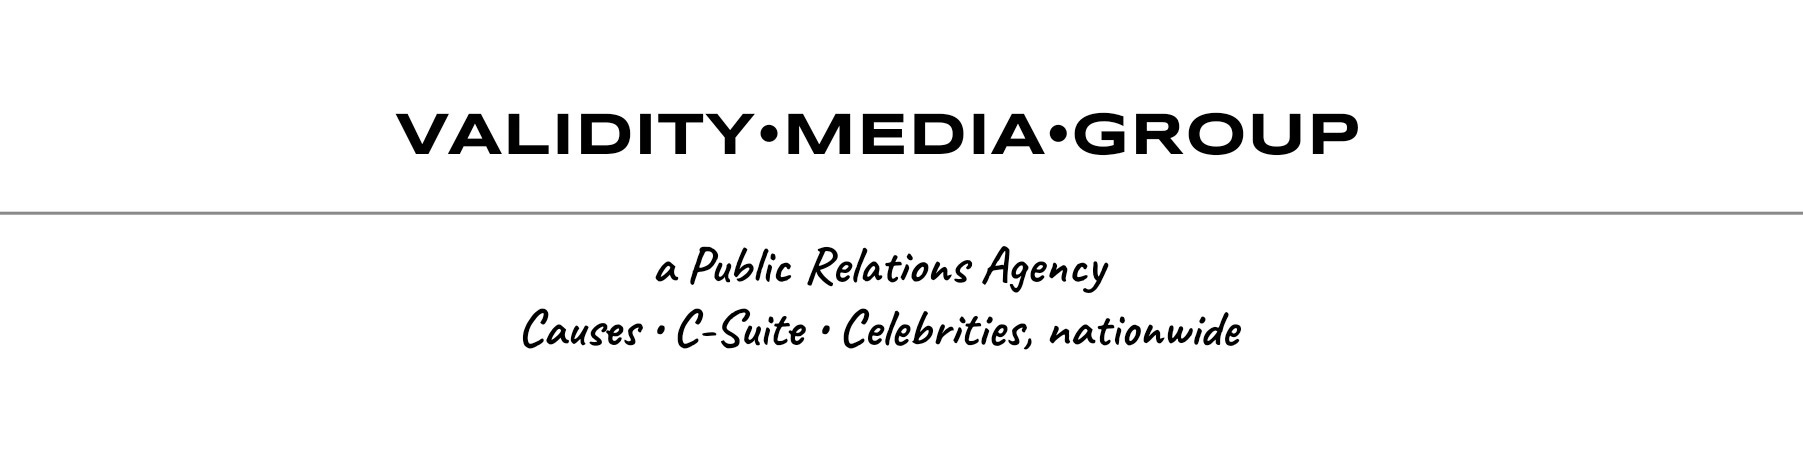 Validity Media Group